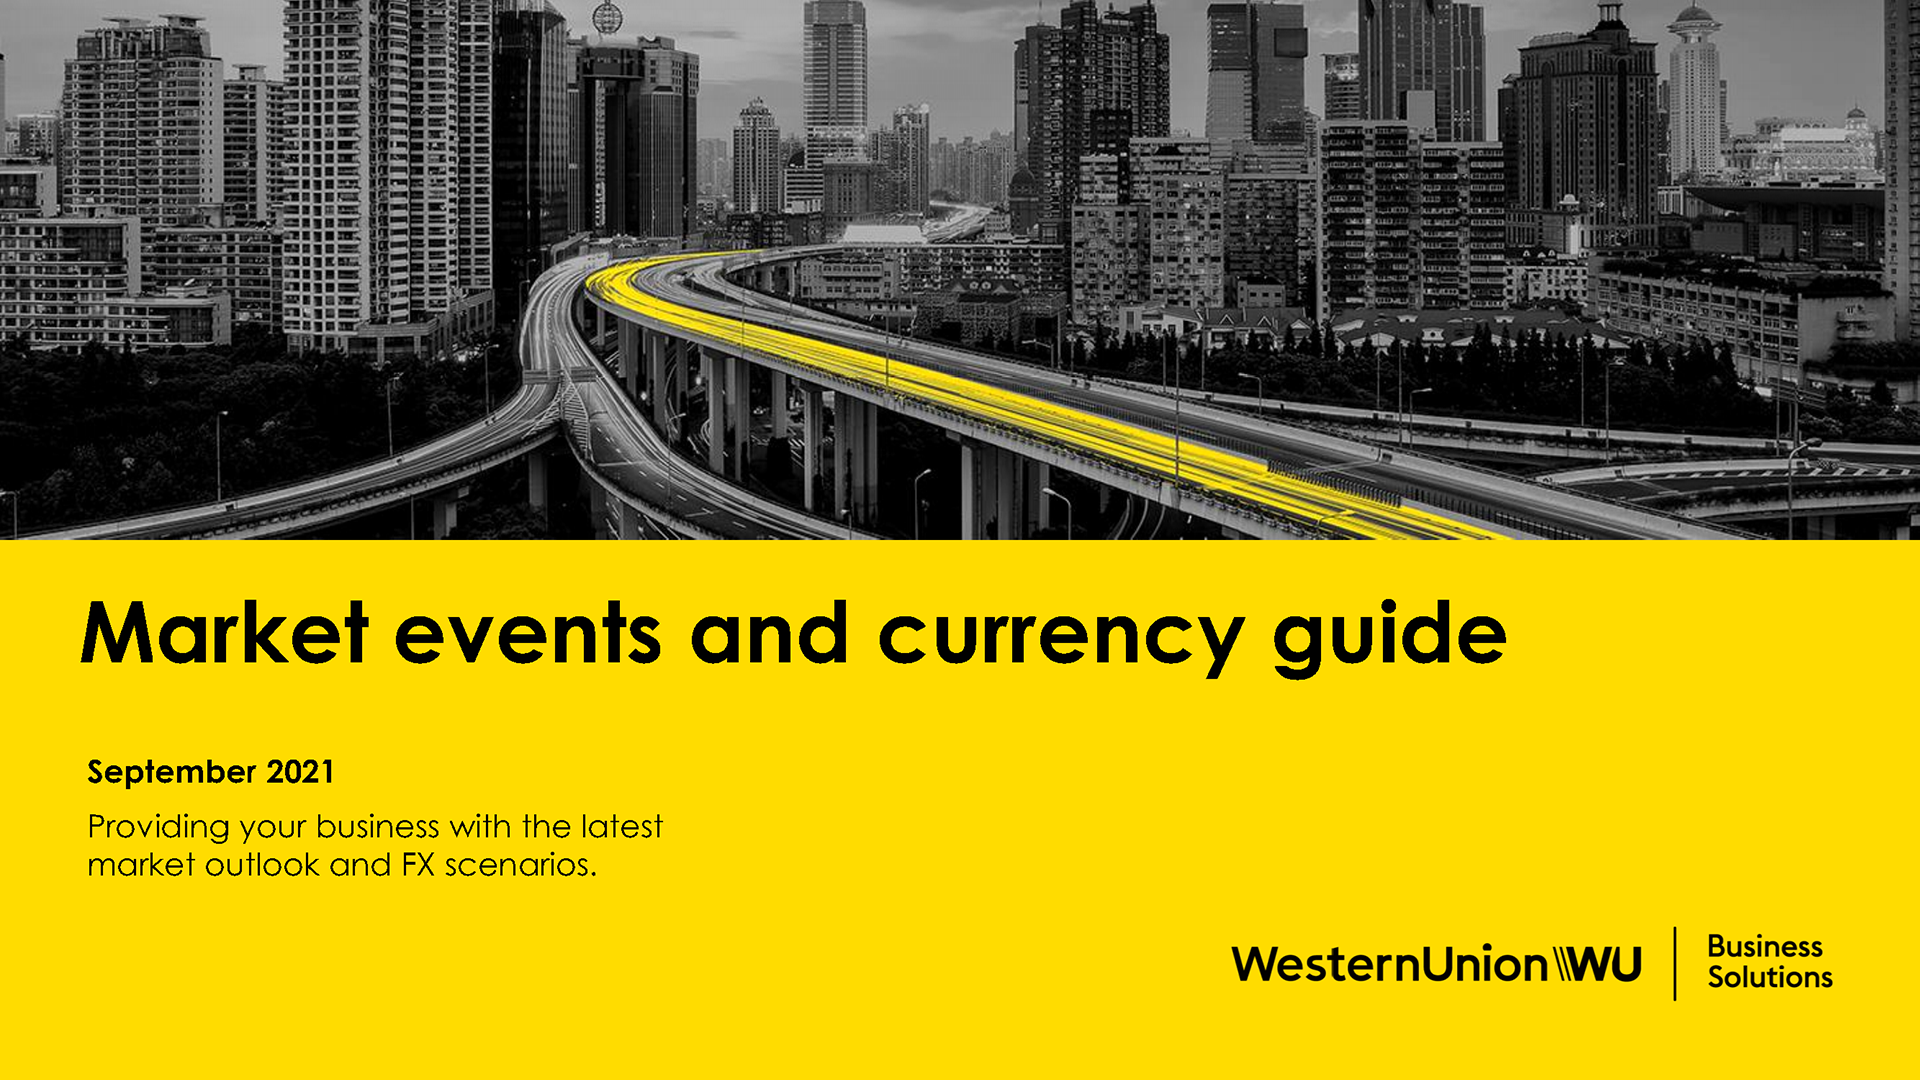 September Market Events and Currency Guide